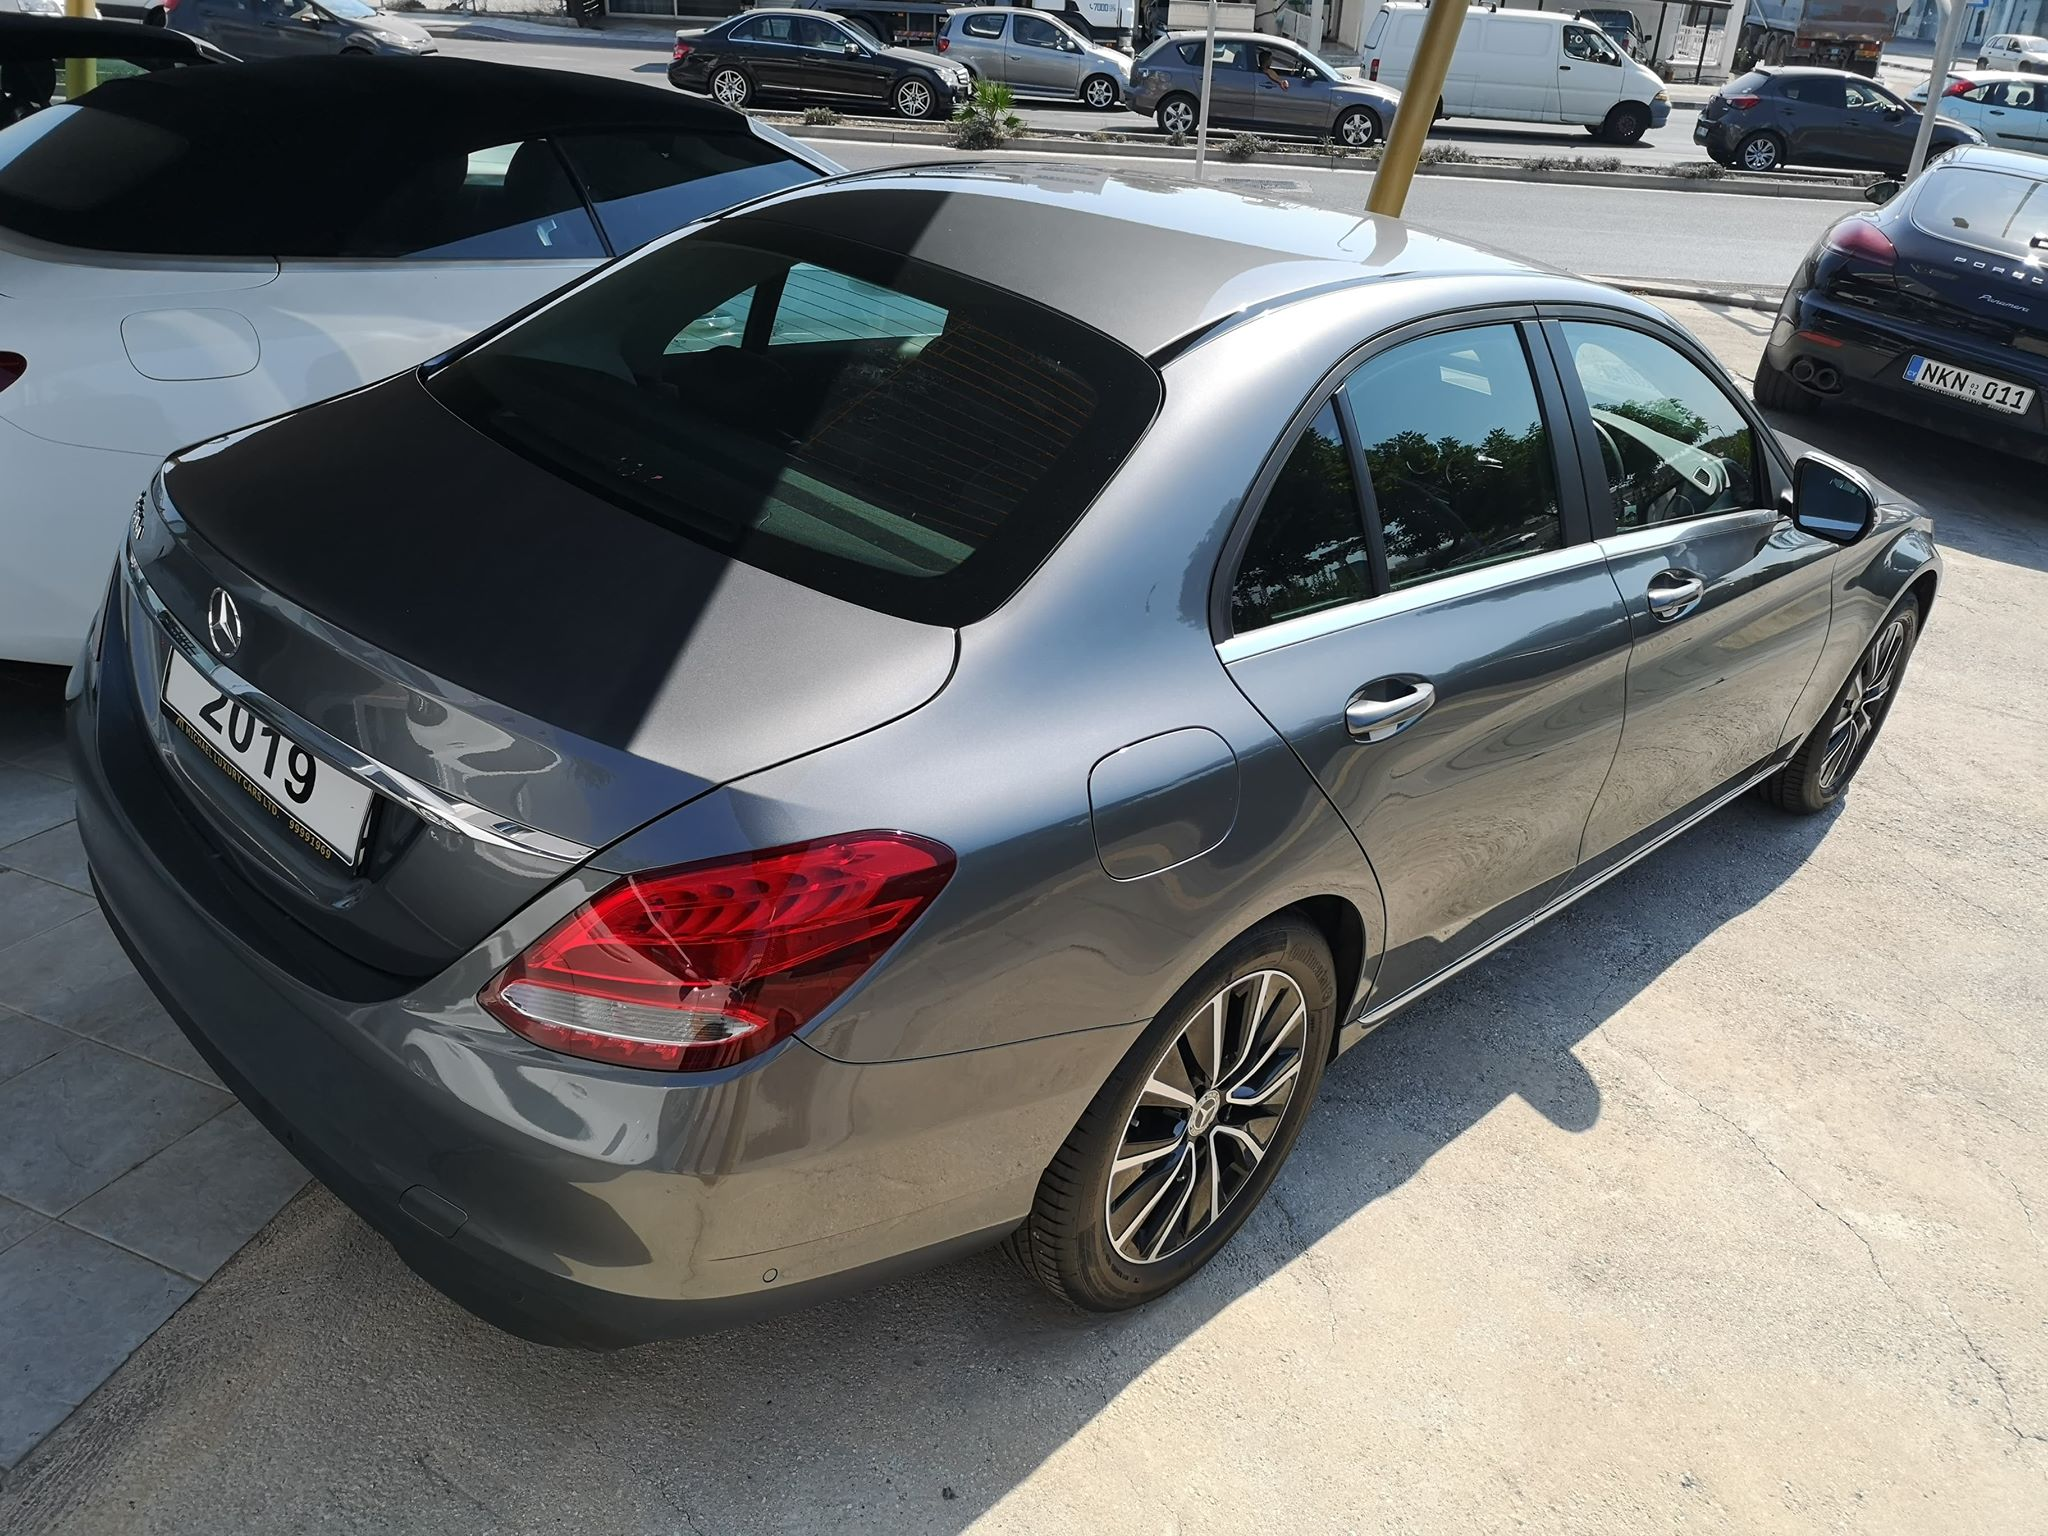 Mercedes Benz C Class 220D 9 Speed Auto